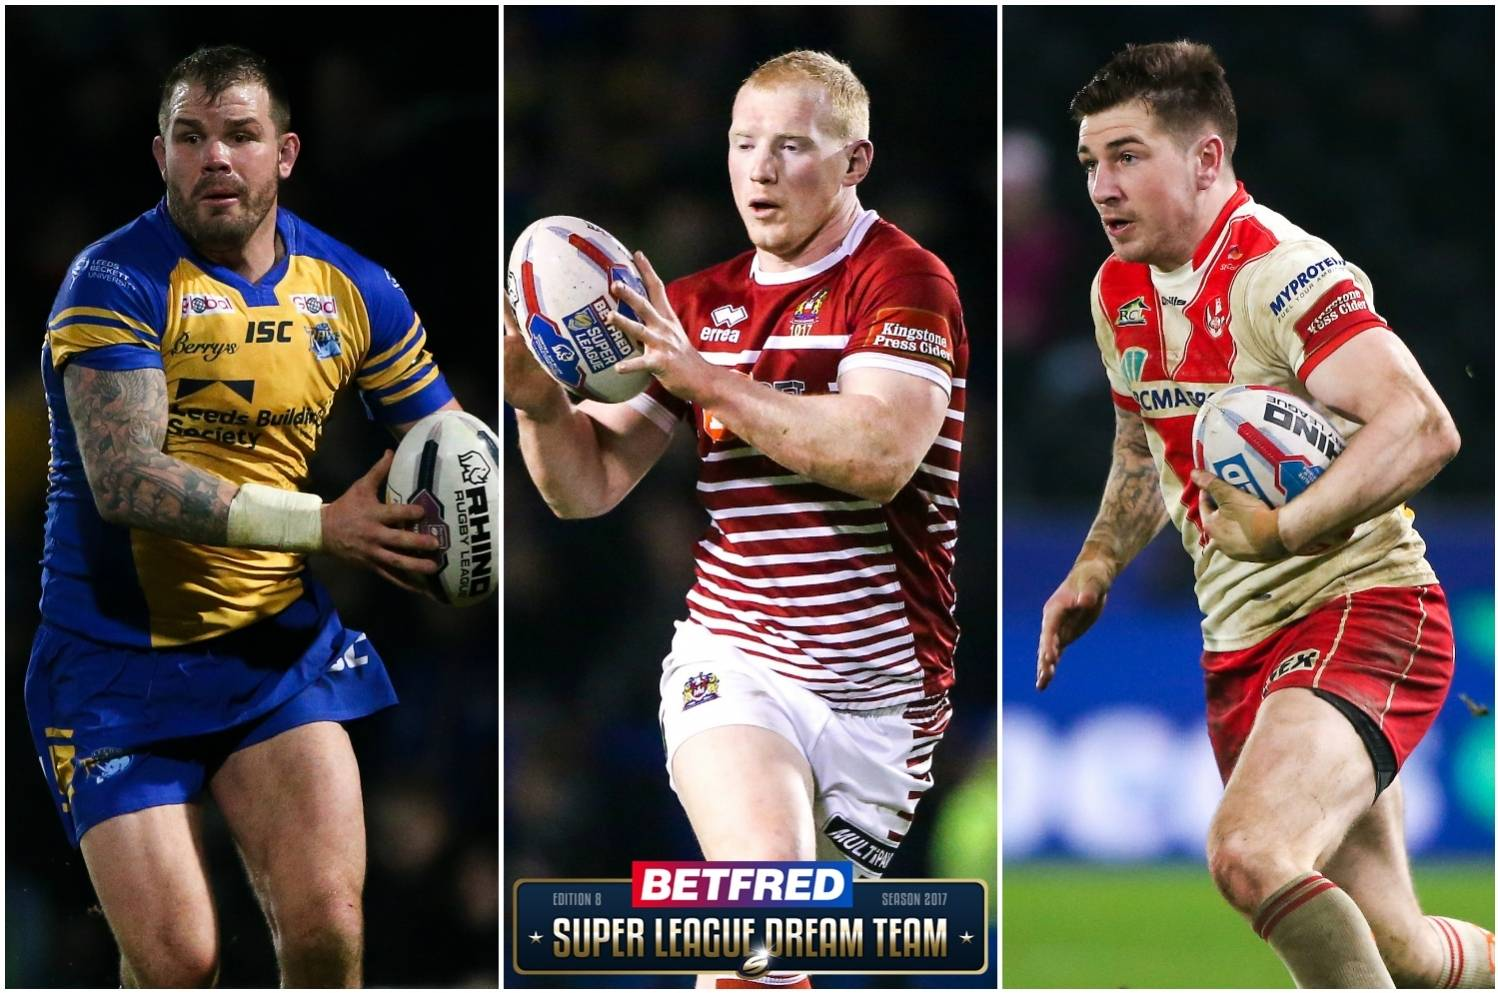 Betfred Super League Dream Team: Top 5 players round 4